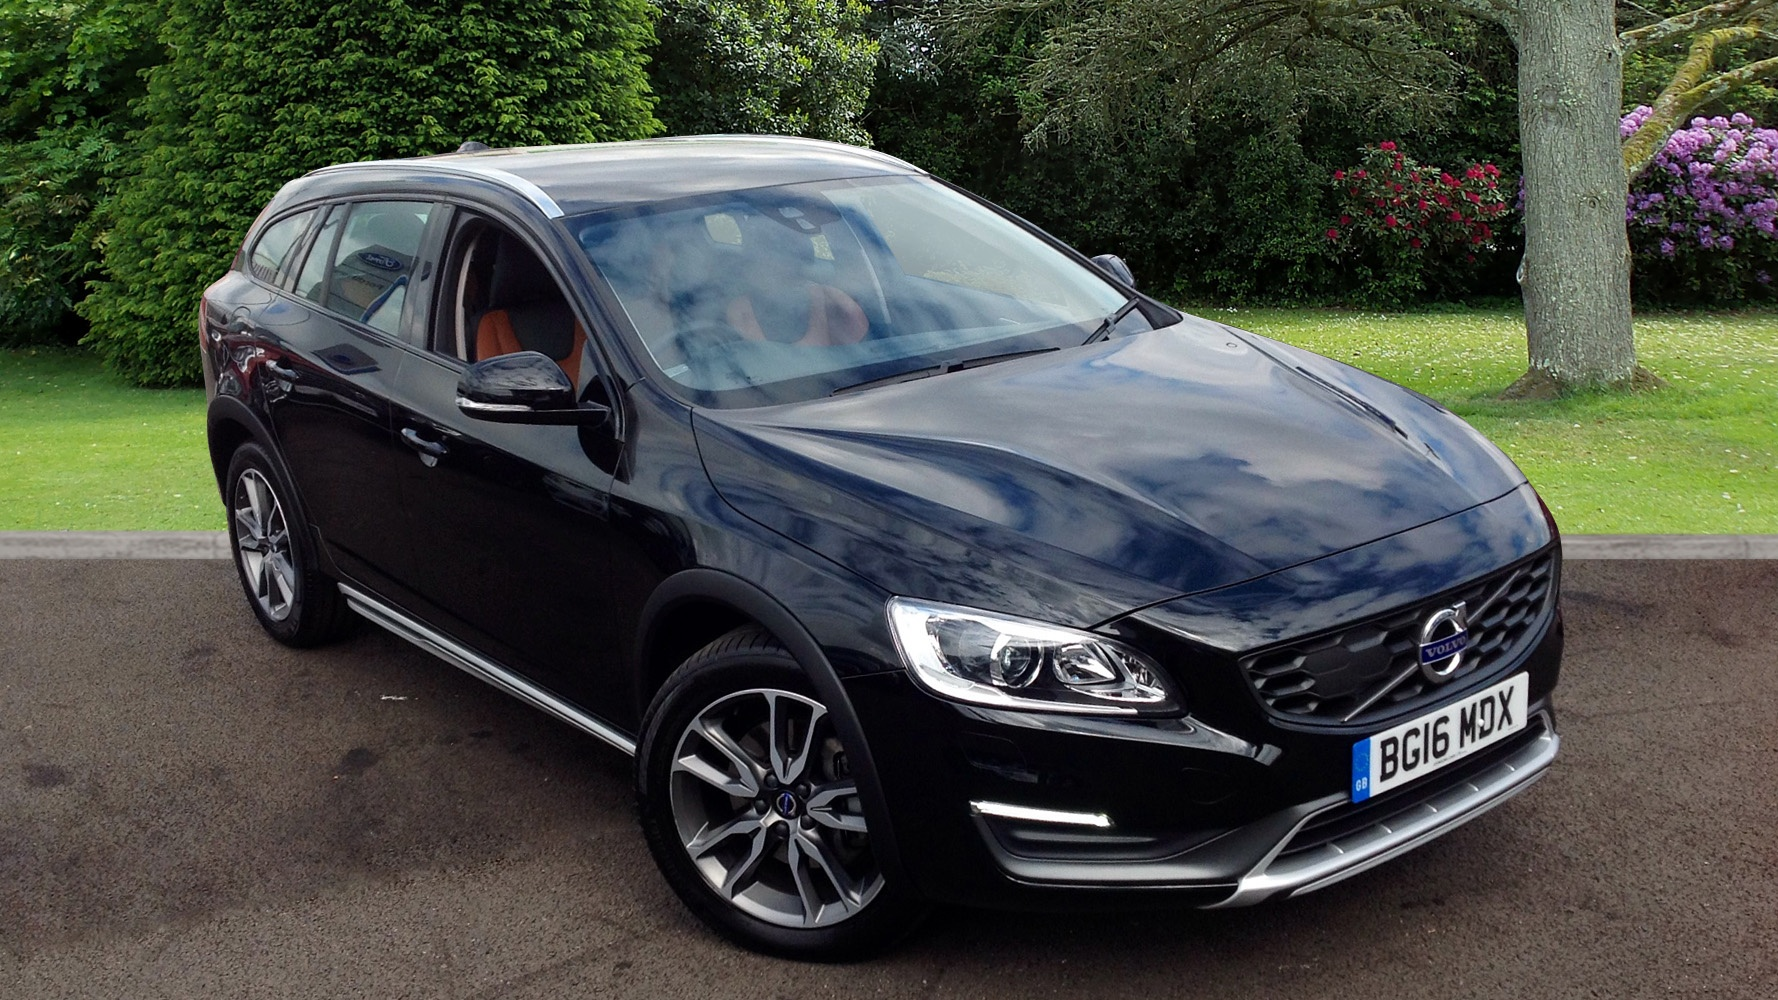 volvo v60 2 4td d4 190 awd cross country lux nav estate used vehicle by volvo cars cardiff cardiff. Black Bedroom Furniture Sets. Home Design Ideas